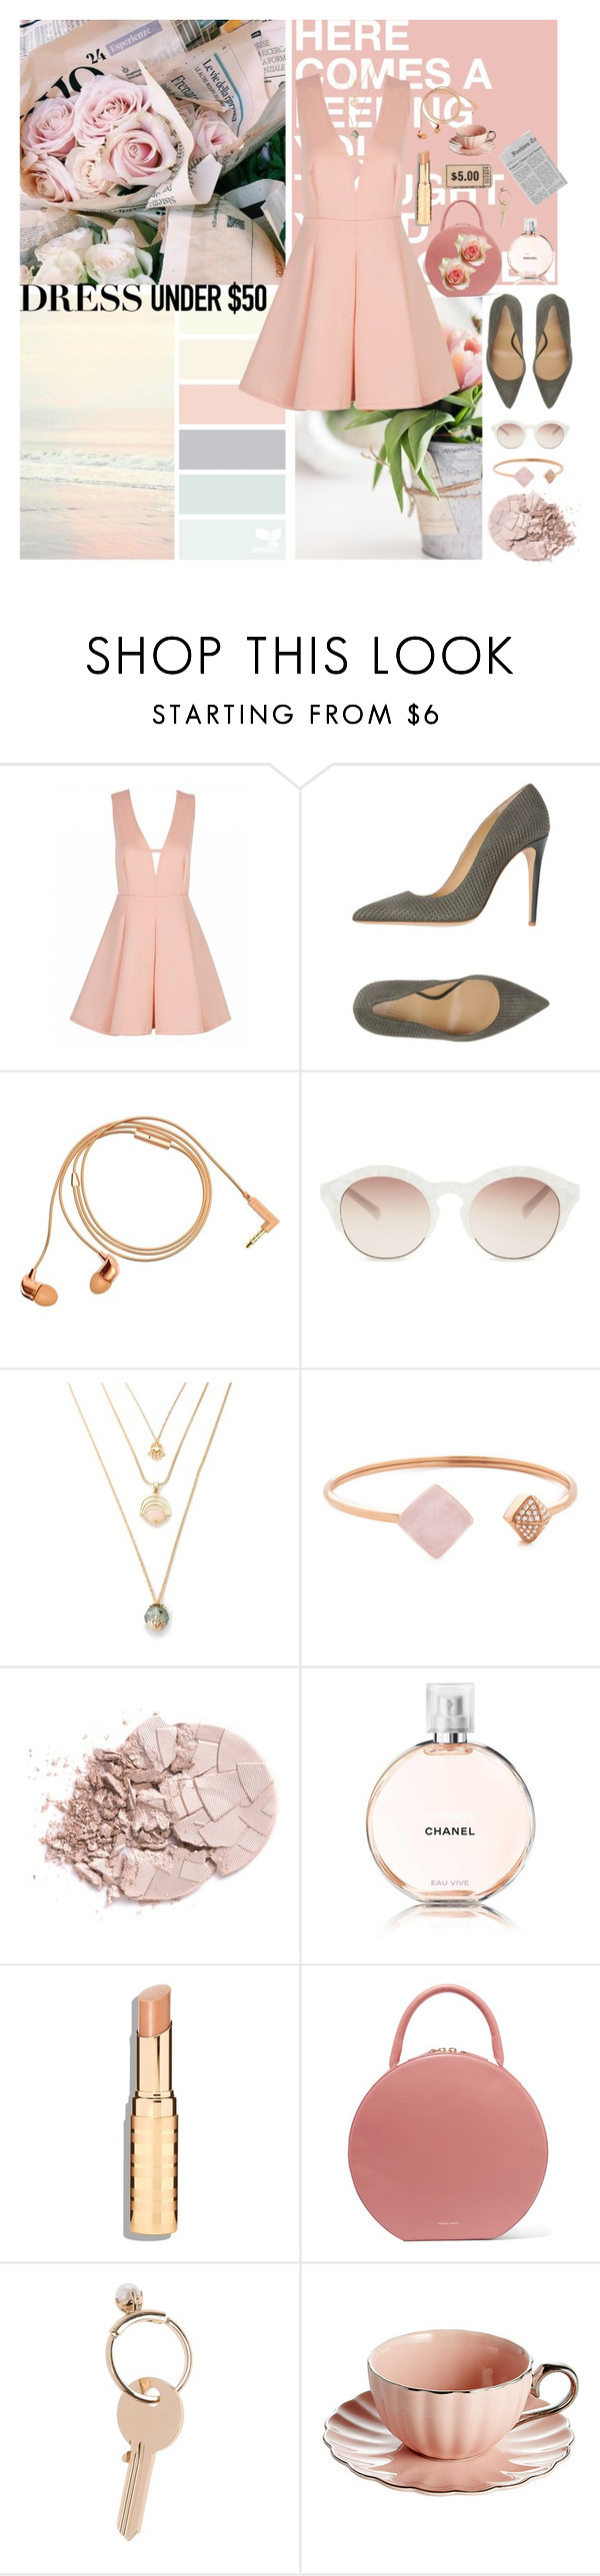 """Spring Pink (Dress Under $50 Contest)"" by cellycinderella ❤ liked on Polyvore featuring Armani Collezioni, Happy Plugs, self-portrait, Michael Kors, Chanel, Mansur Gavriel, Maison Margiela and Dressunder50"